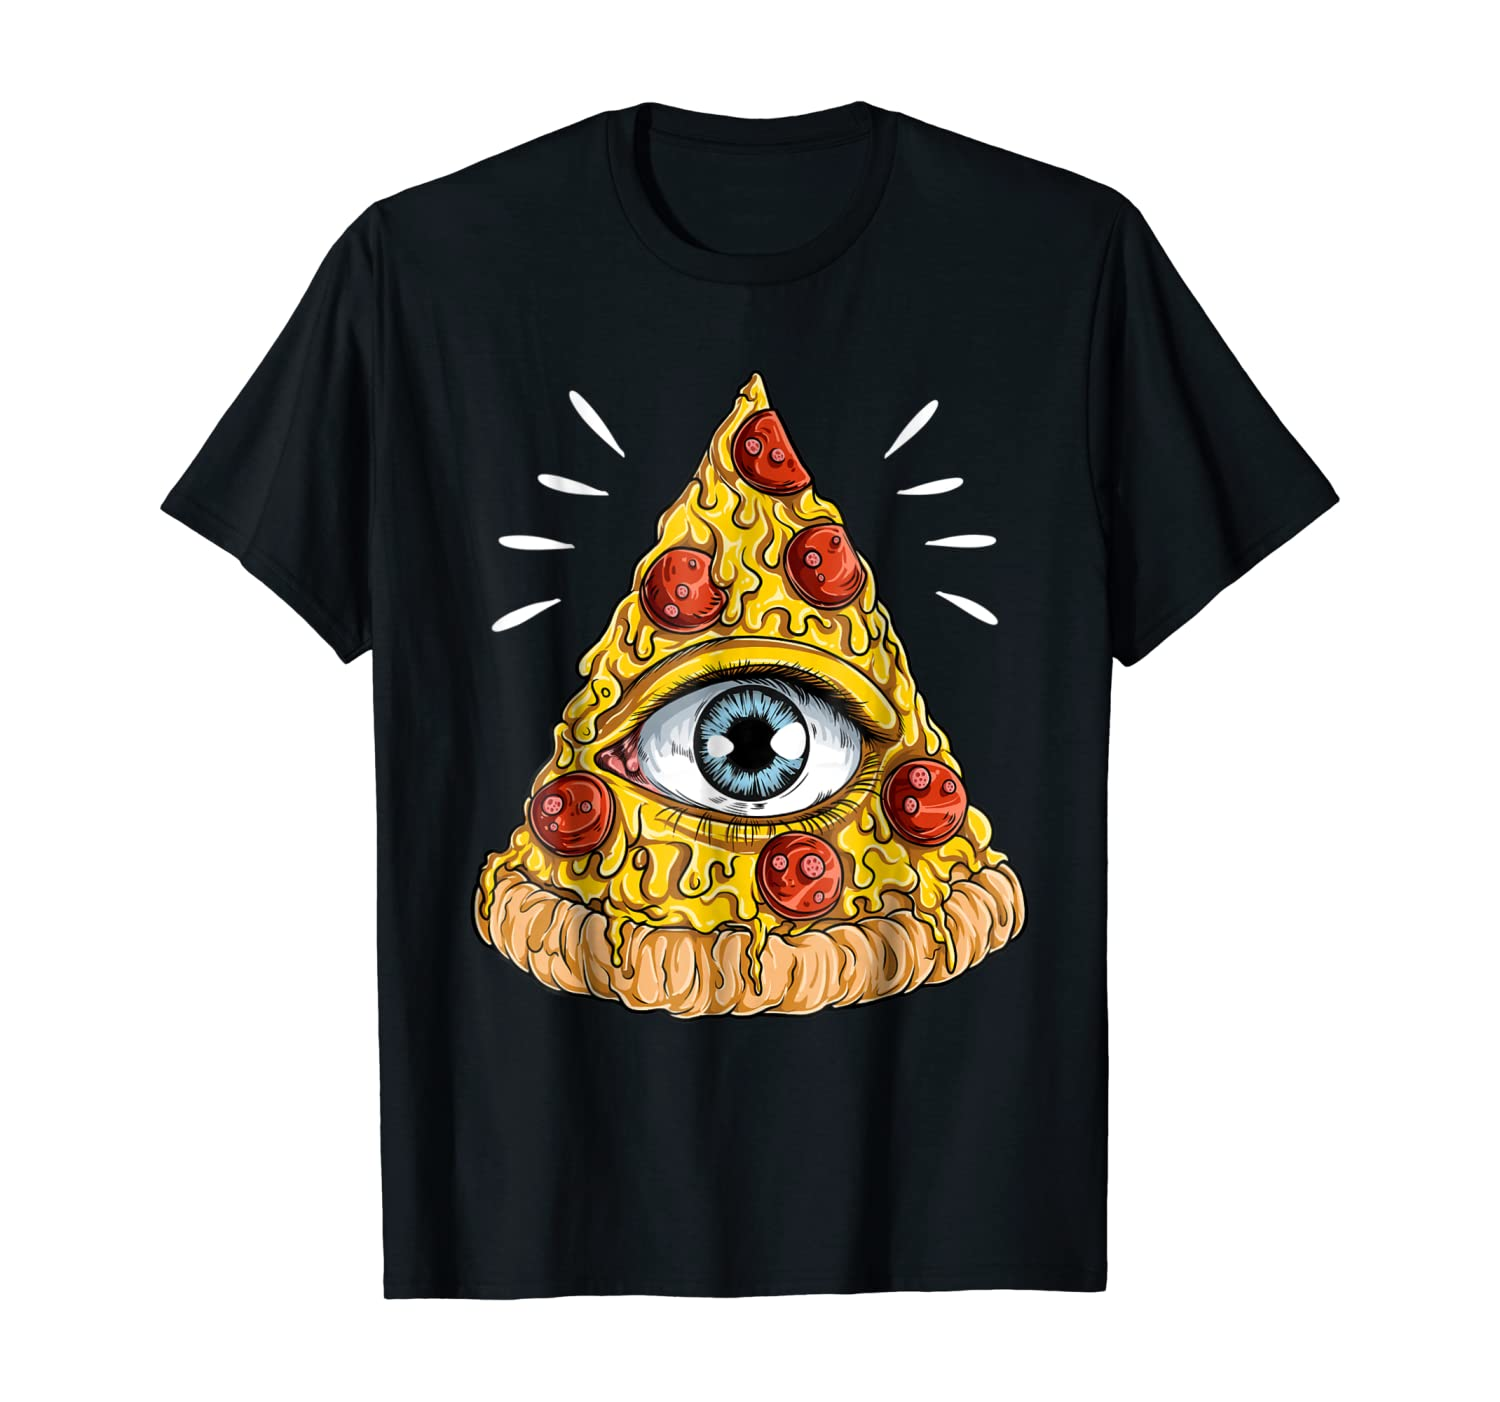 Shane Dawson All-Seeing Eye Pizza T-shirt